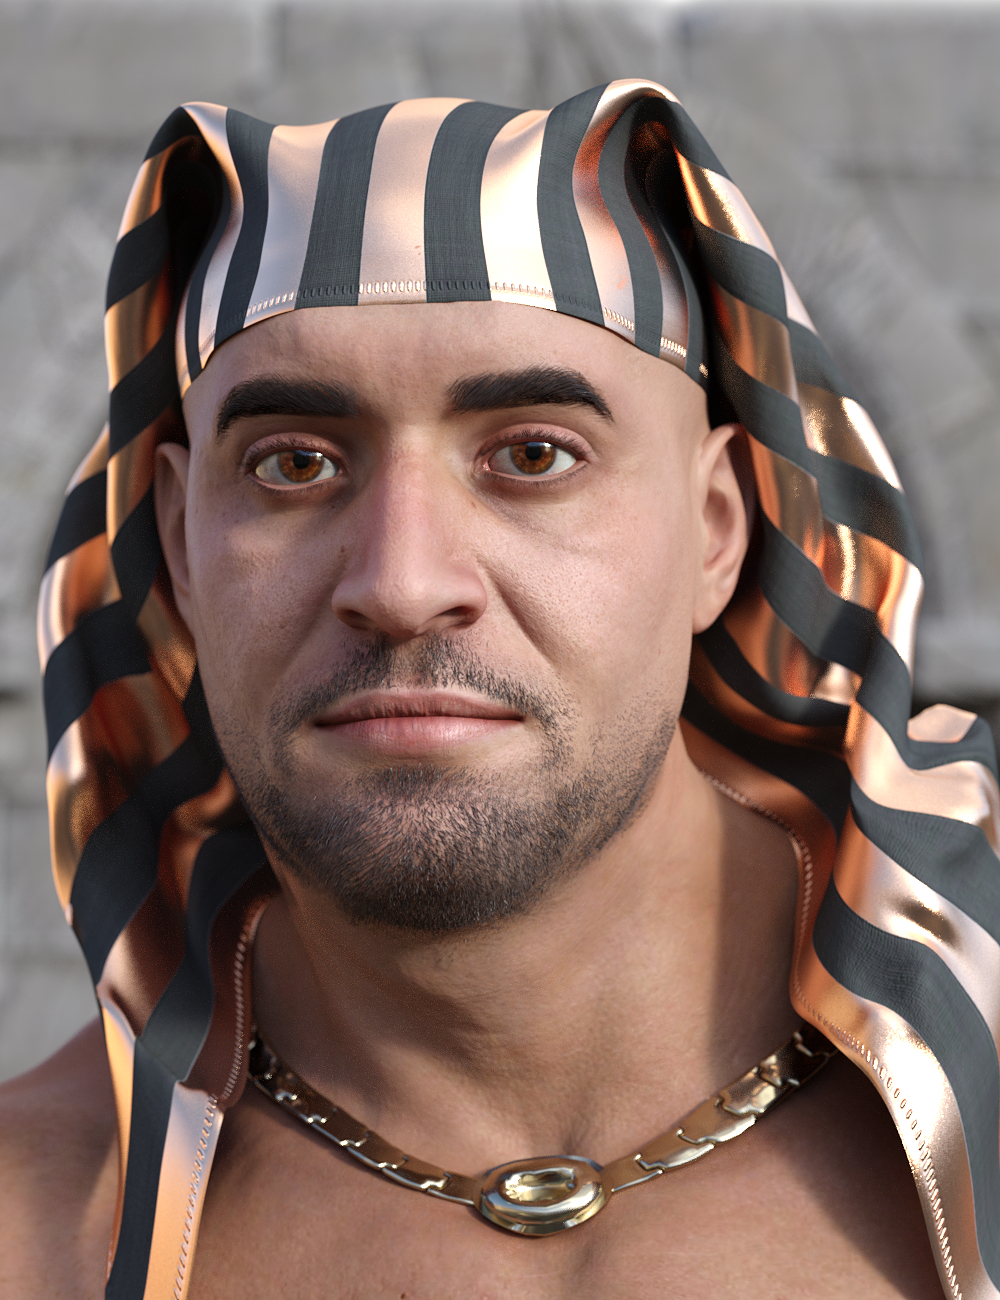 Faust HD for Genesis 8.1 Male and for Mick by: Vyusur, 3D Models by Daz 3D